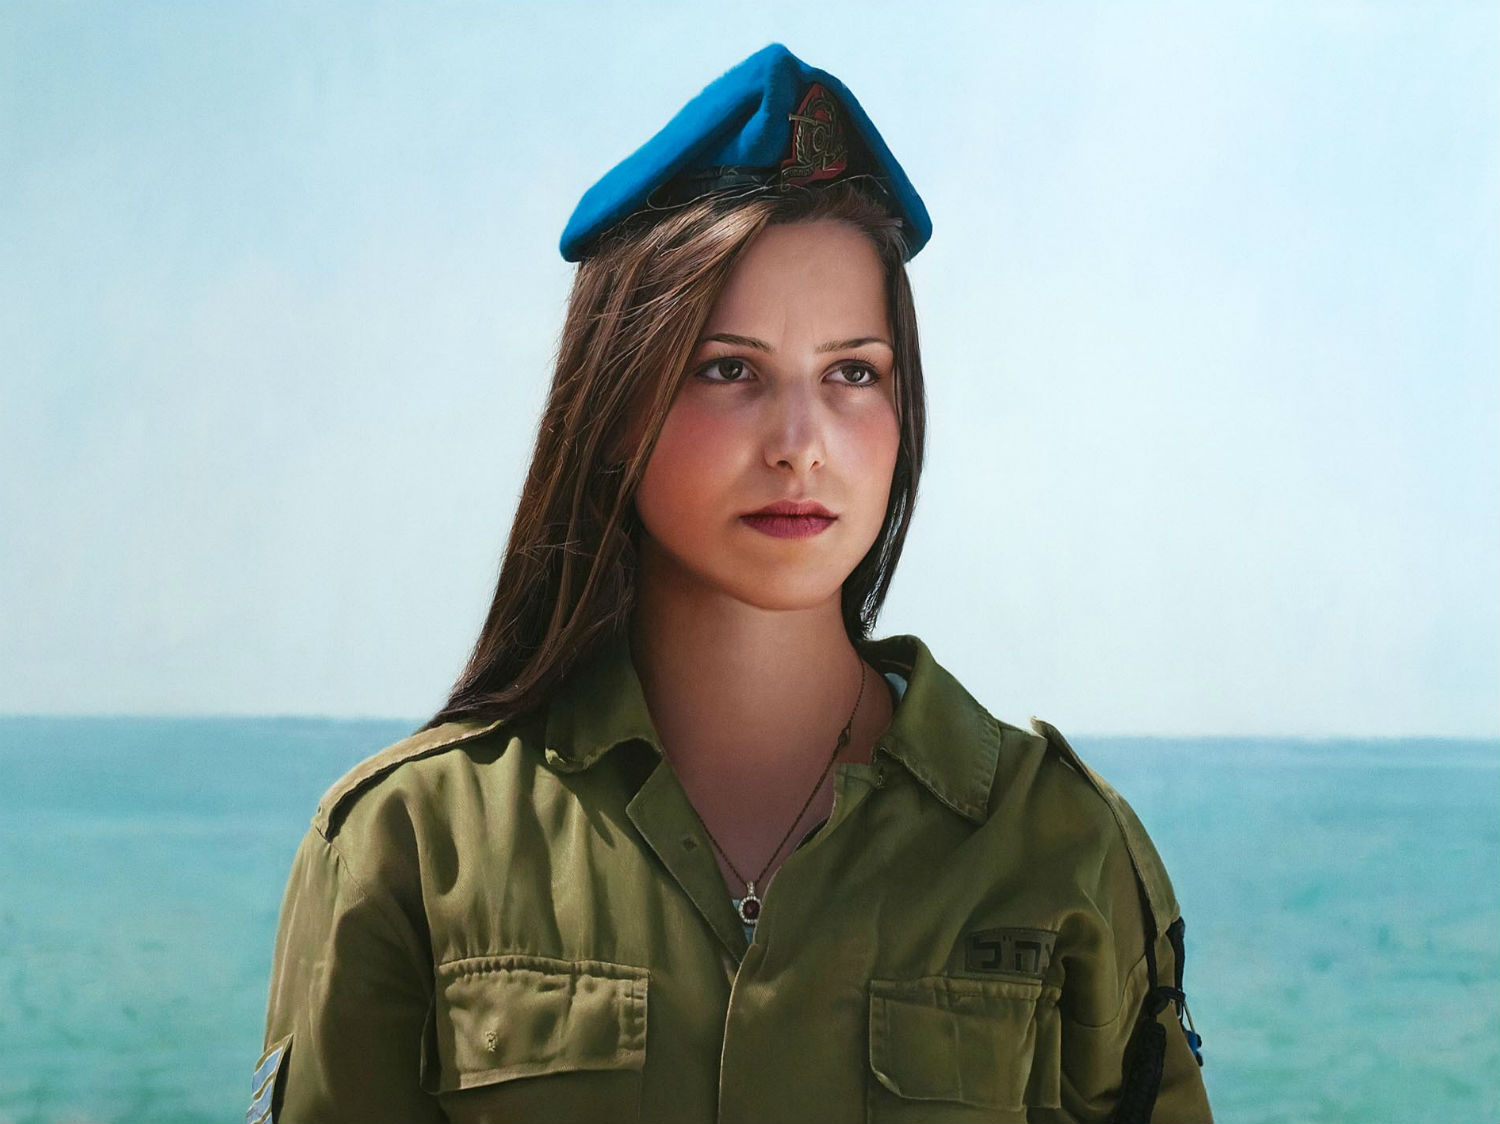 yigal ozeri hyperrealism painting girl army